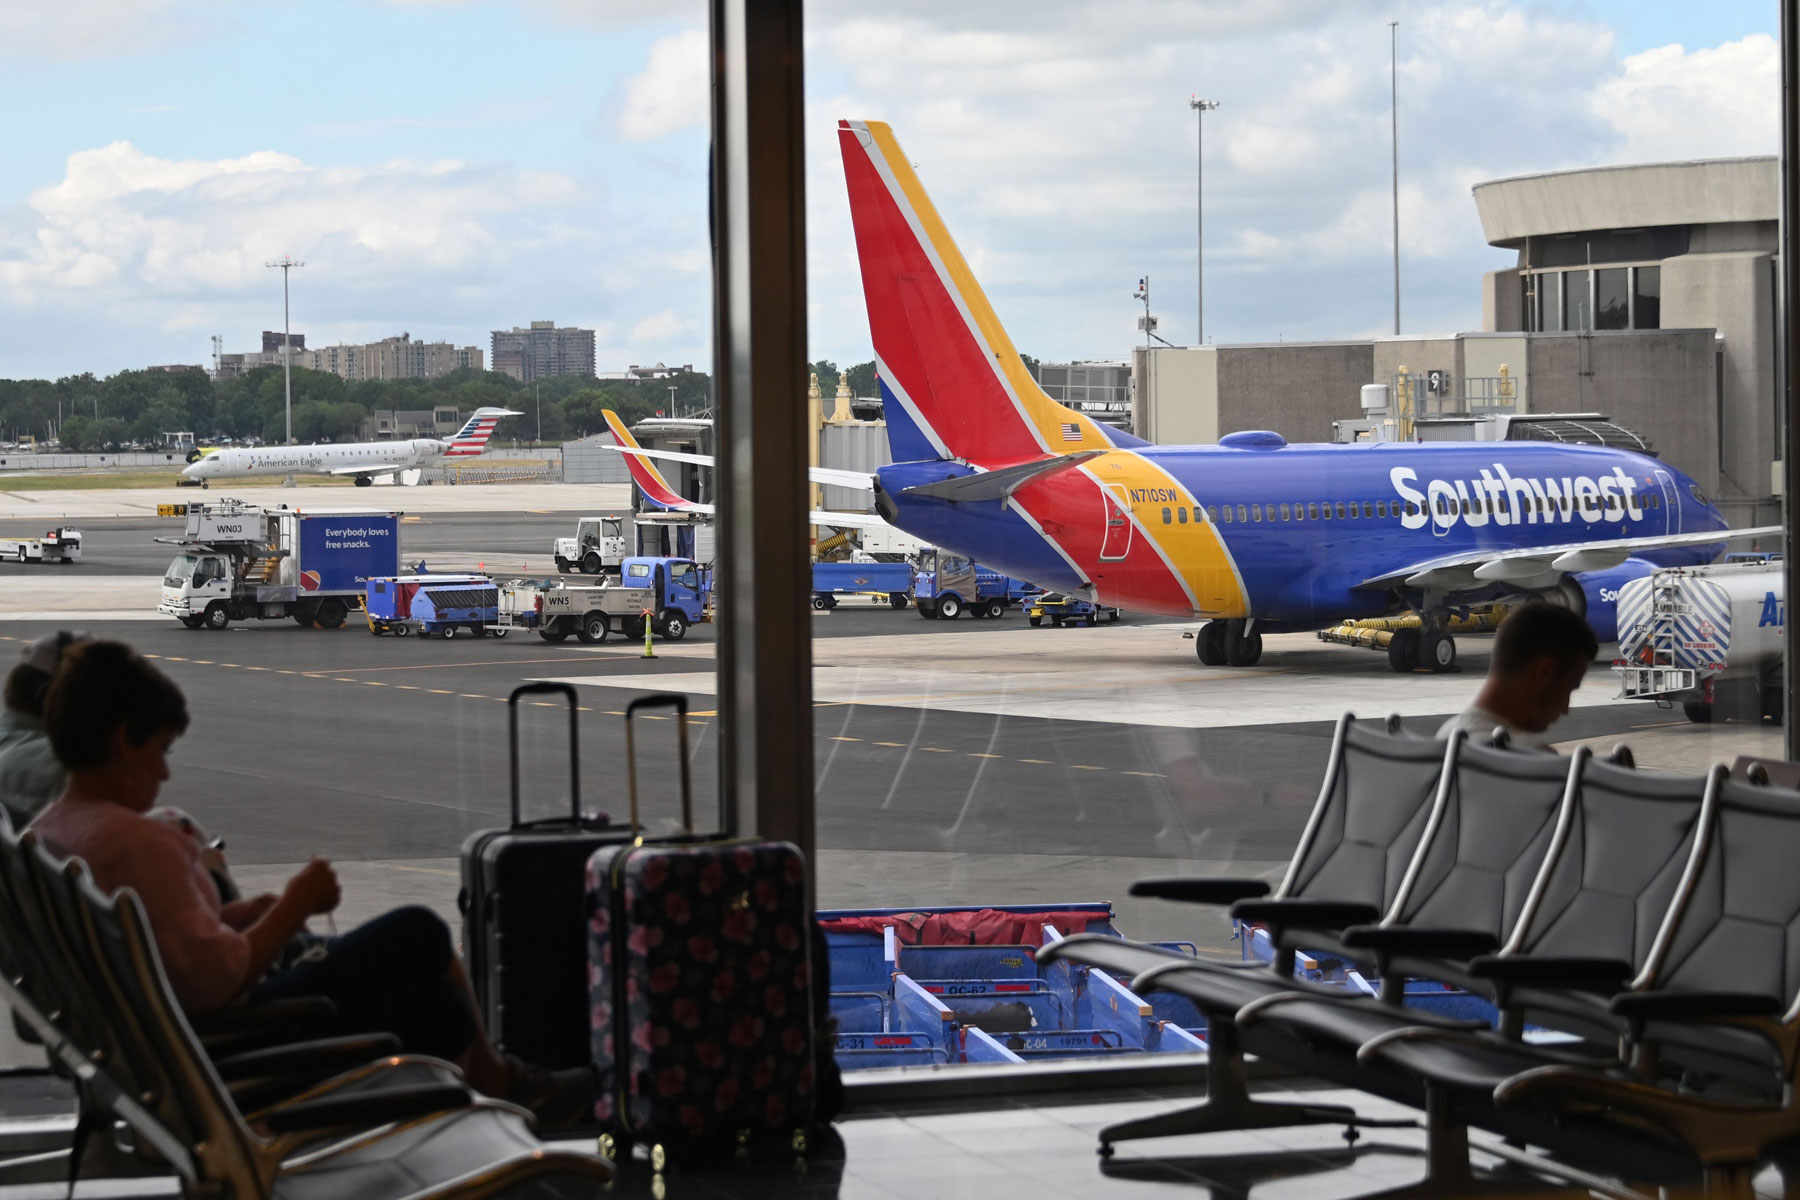 passengers waiting inside the airport have a view of a Southwest Airlines plane